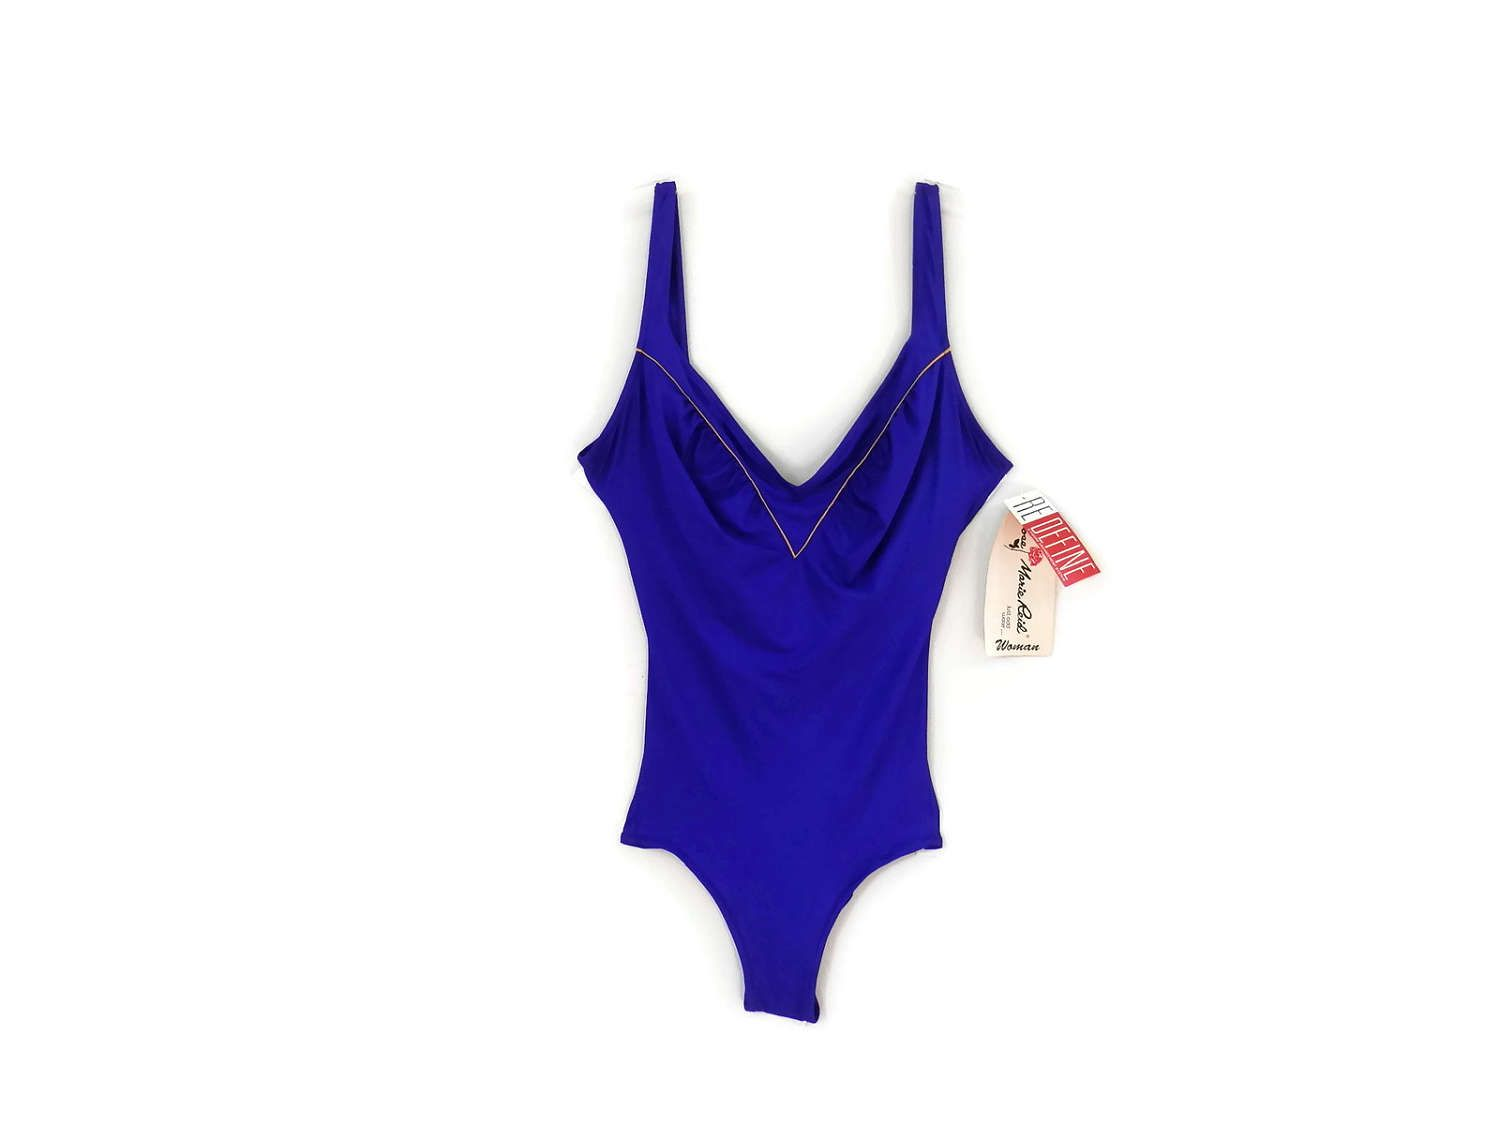 c7b8b8f37a7f4 NEW Plus Size Swimsuit by Rose Marie Reid Purple w/Gold Piping Vintage  Swimsuit Old Store Dead Stock Plus Size 22W